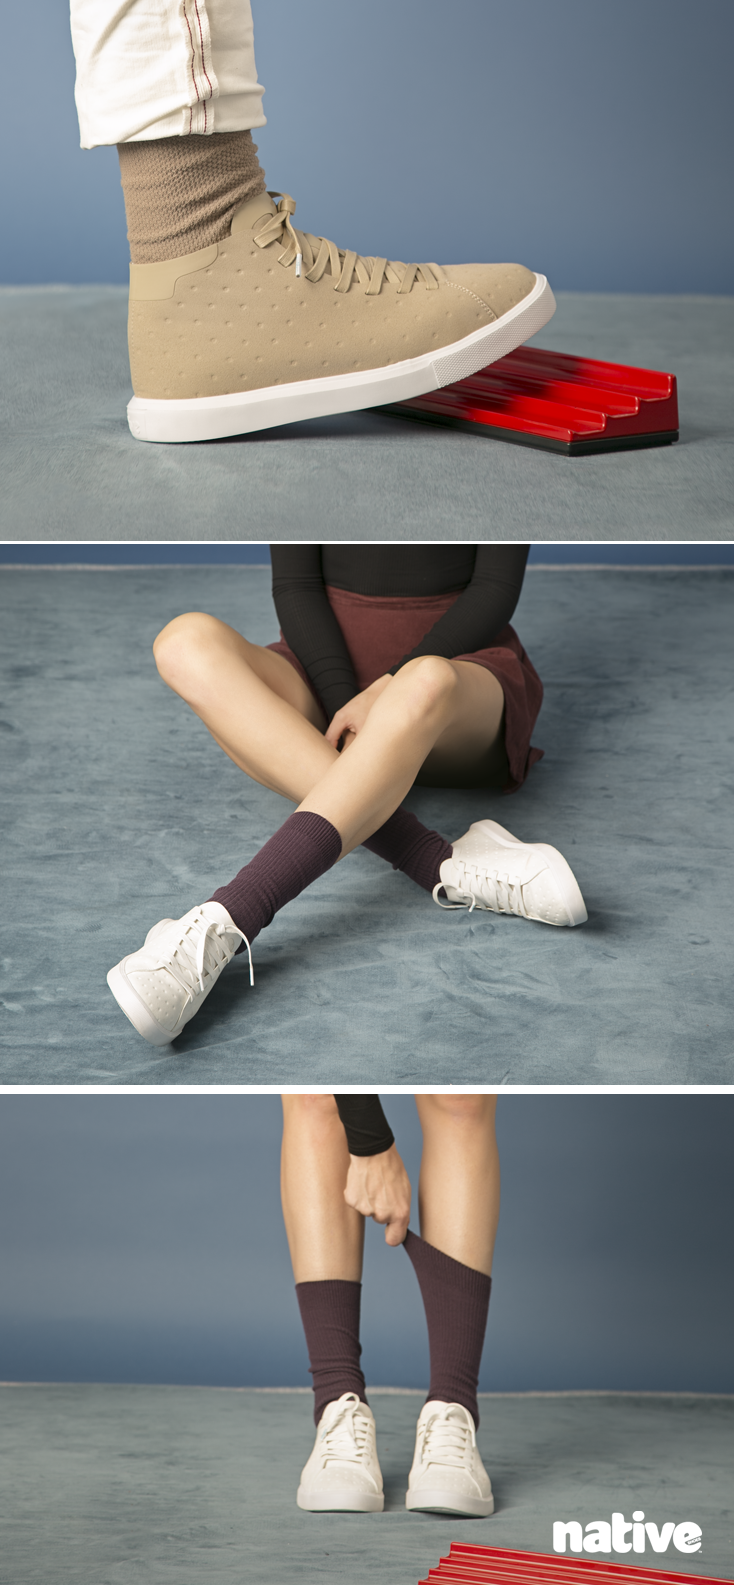 The Native Shoes Monaco–with a slim profile, no-sew accents and a microfibre upper, they're surely shoes for the modern trendsetter. #keepitlite #beastfree